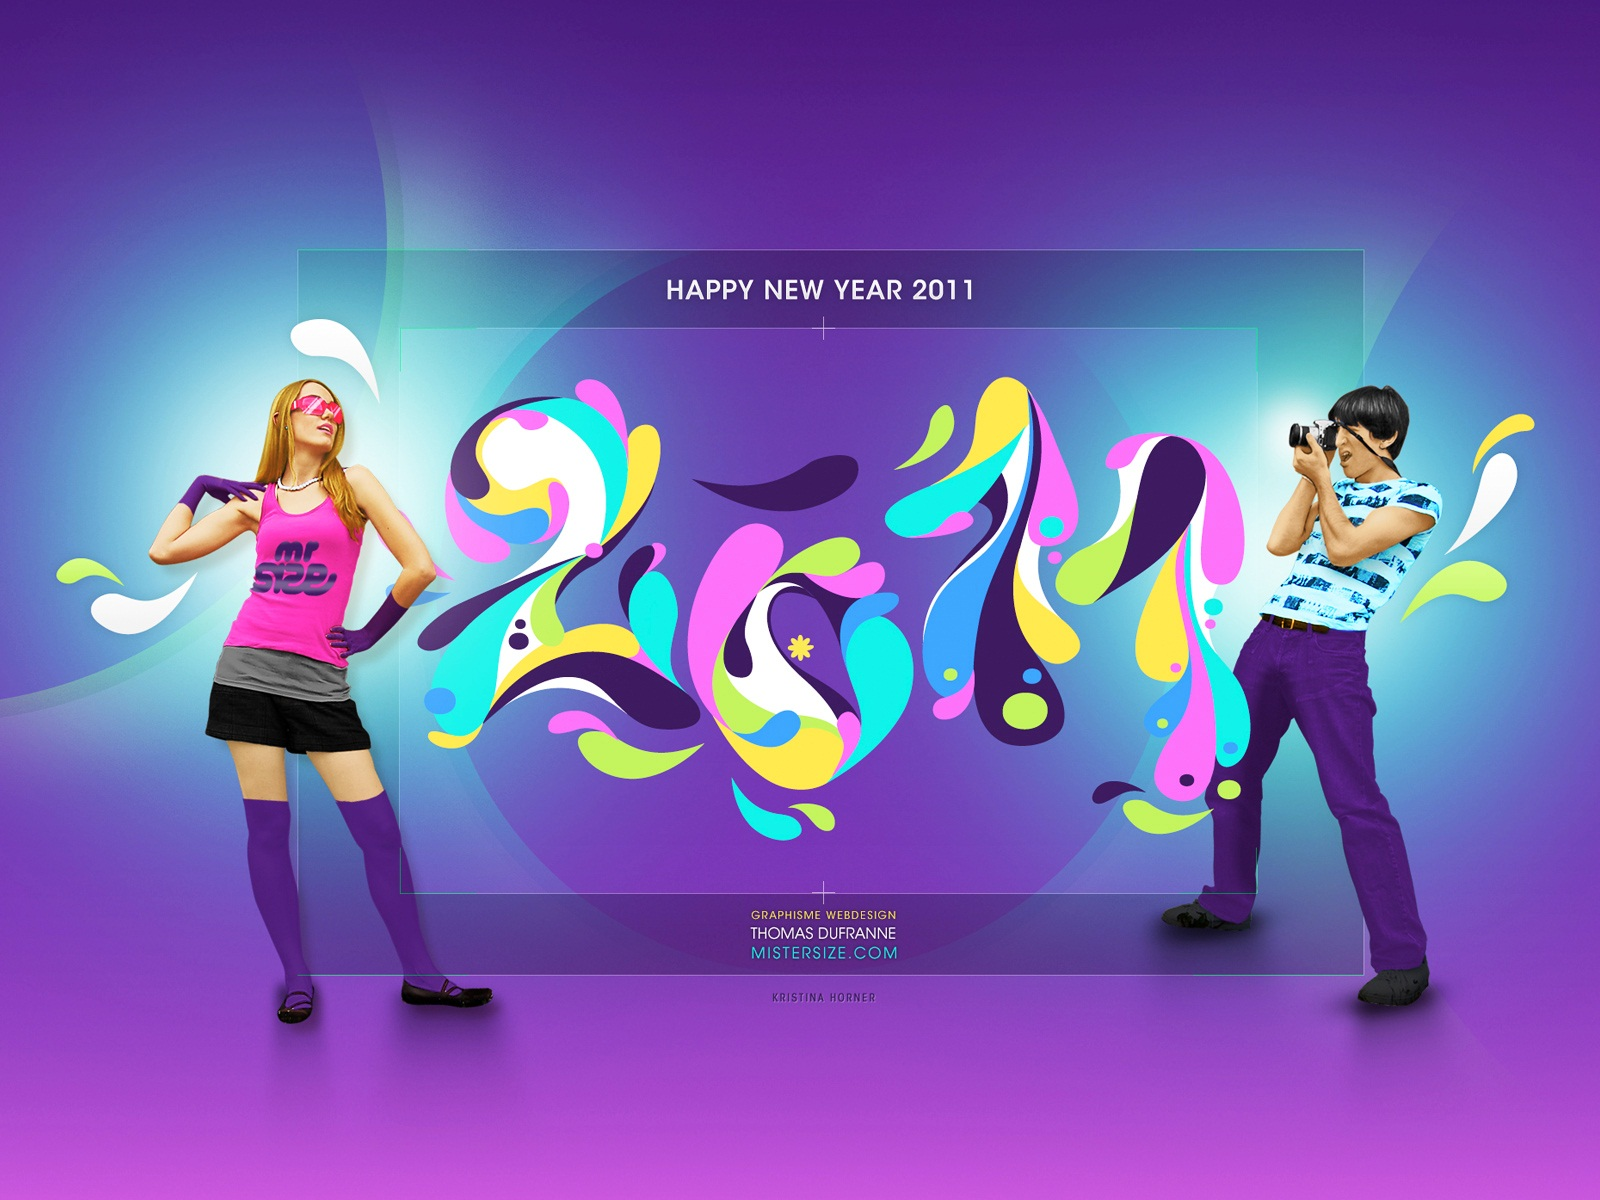 Happy New Year 2011 HD 300.28 Kb